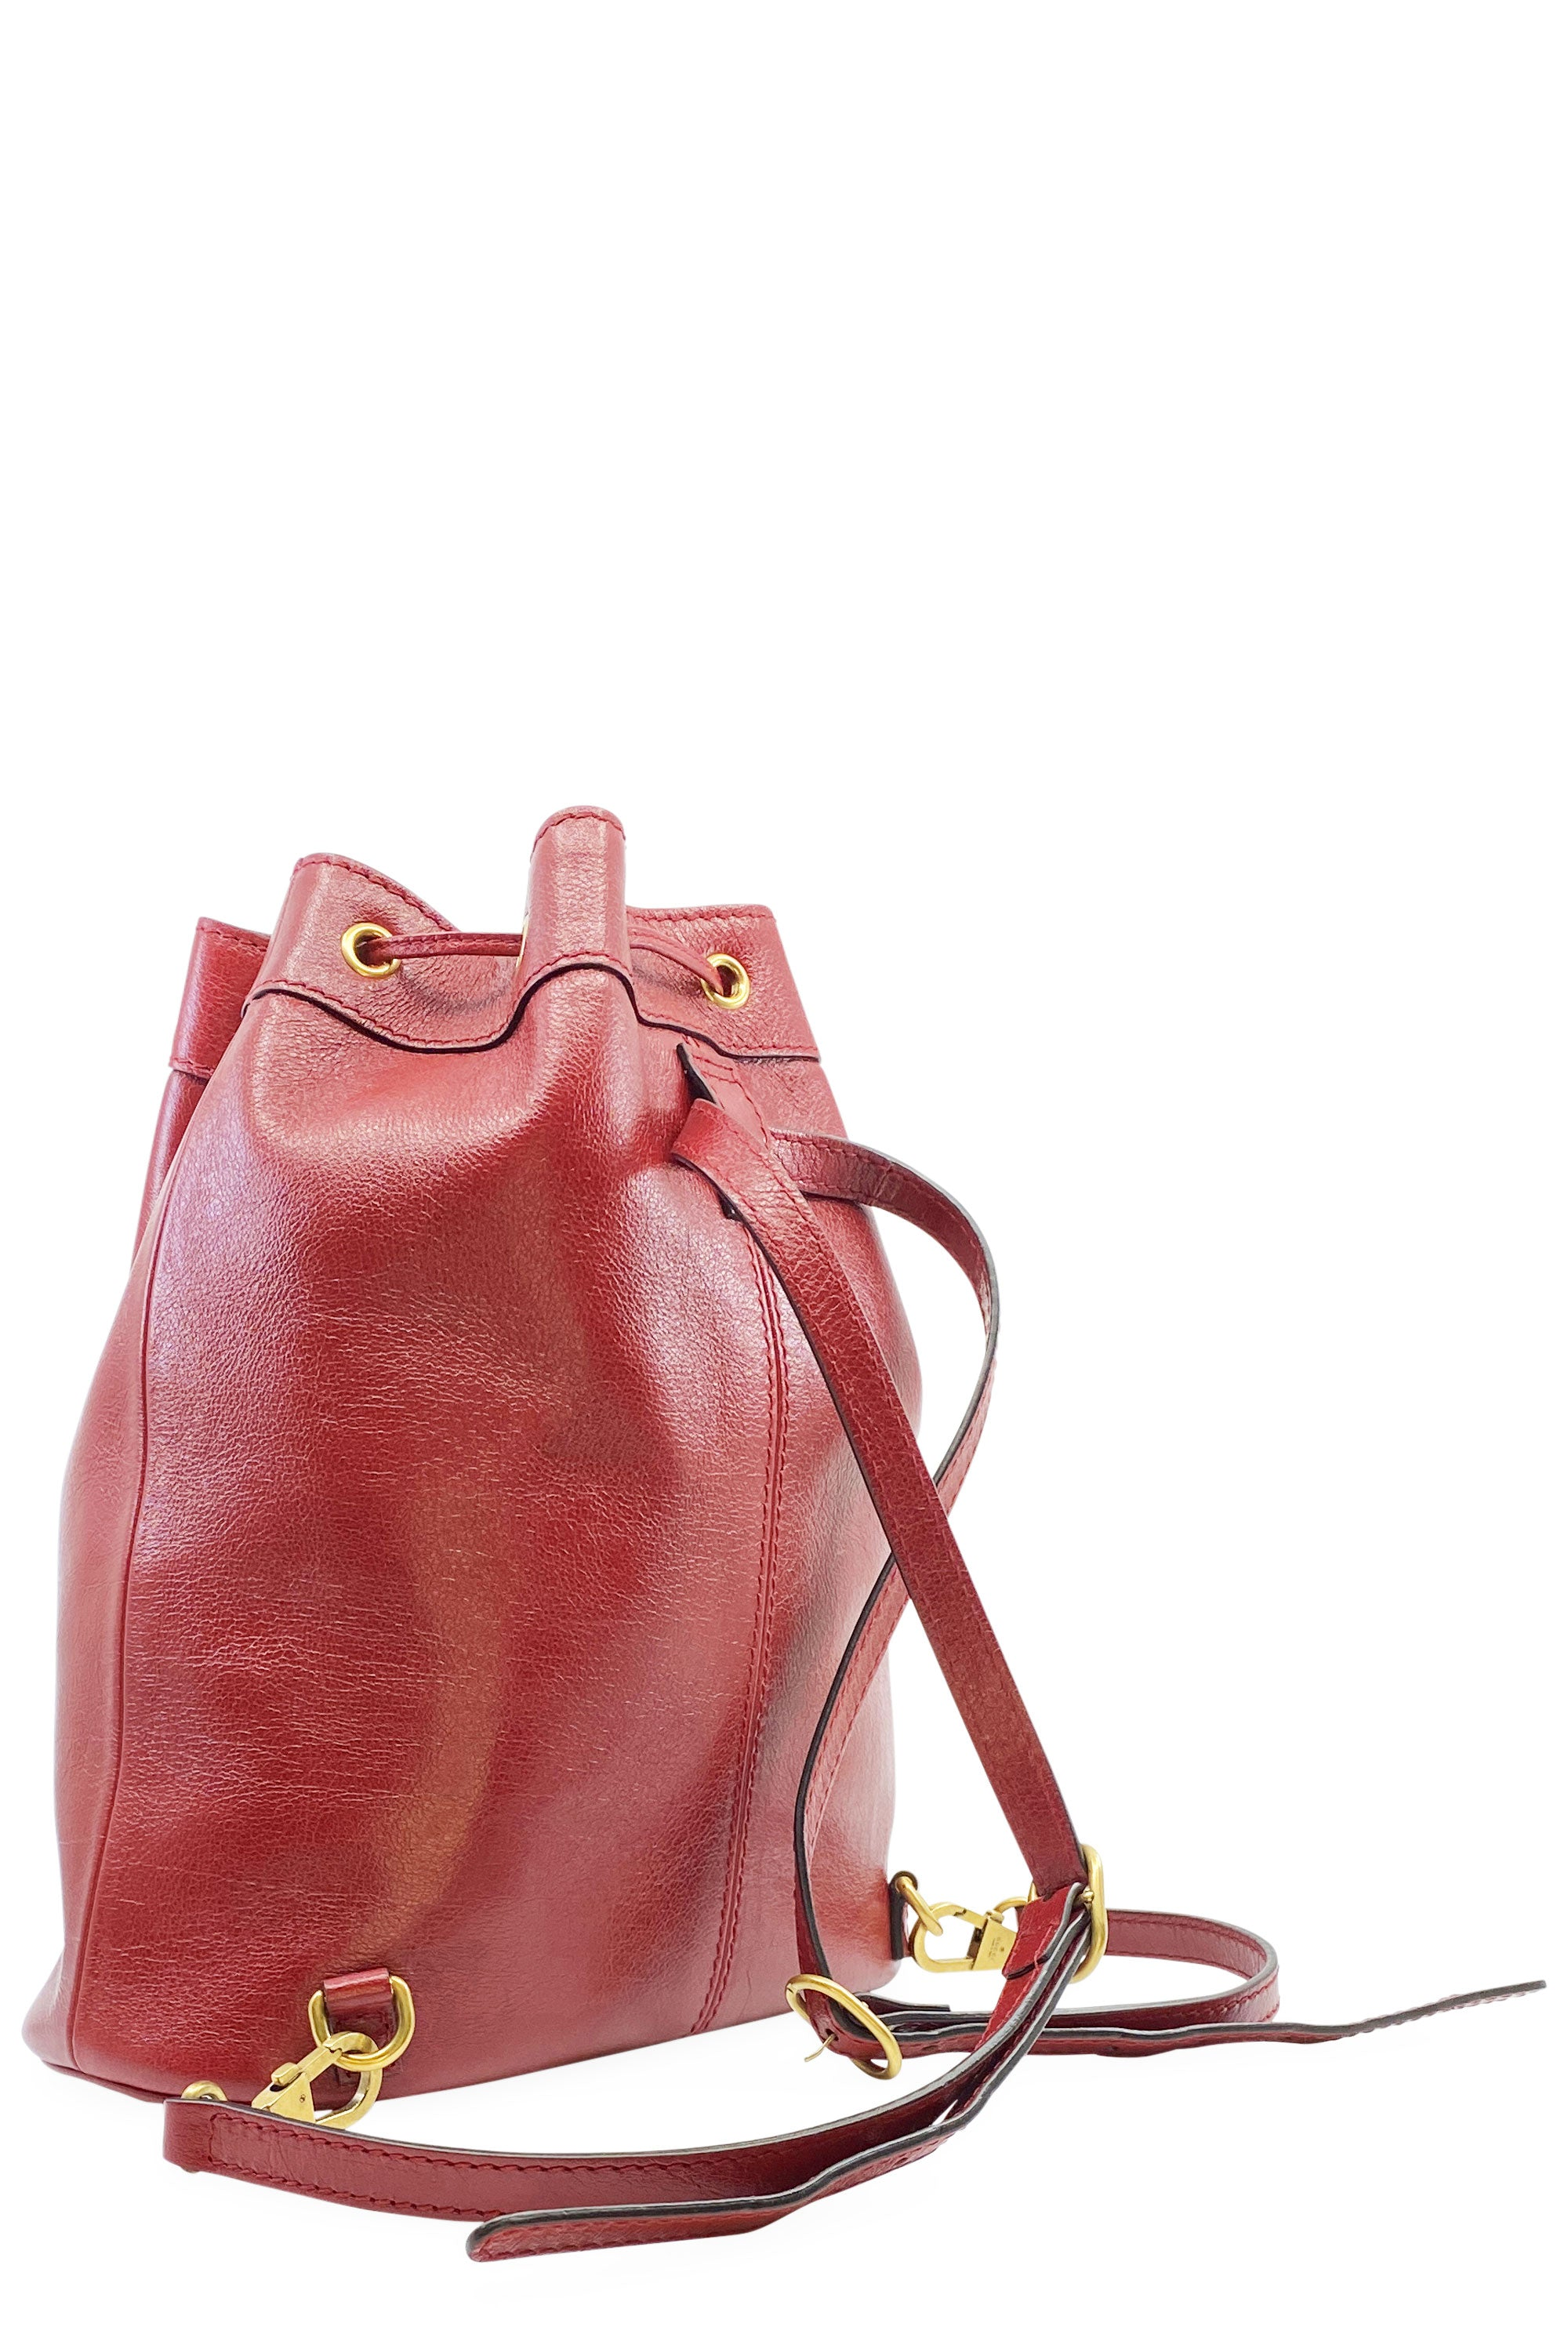 GUCCI Rebelle Bucket Backpack Medium Romantic Cerise